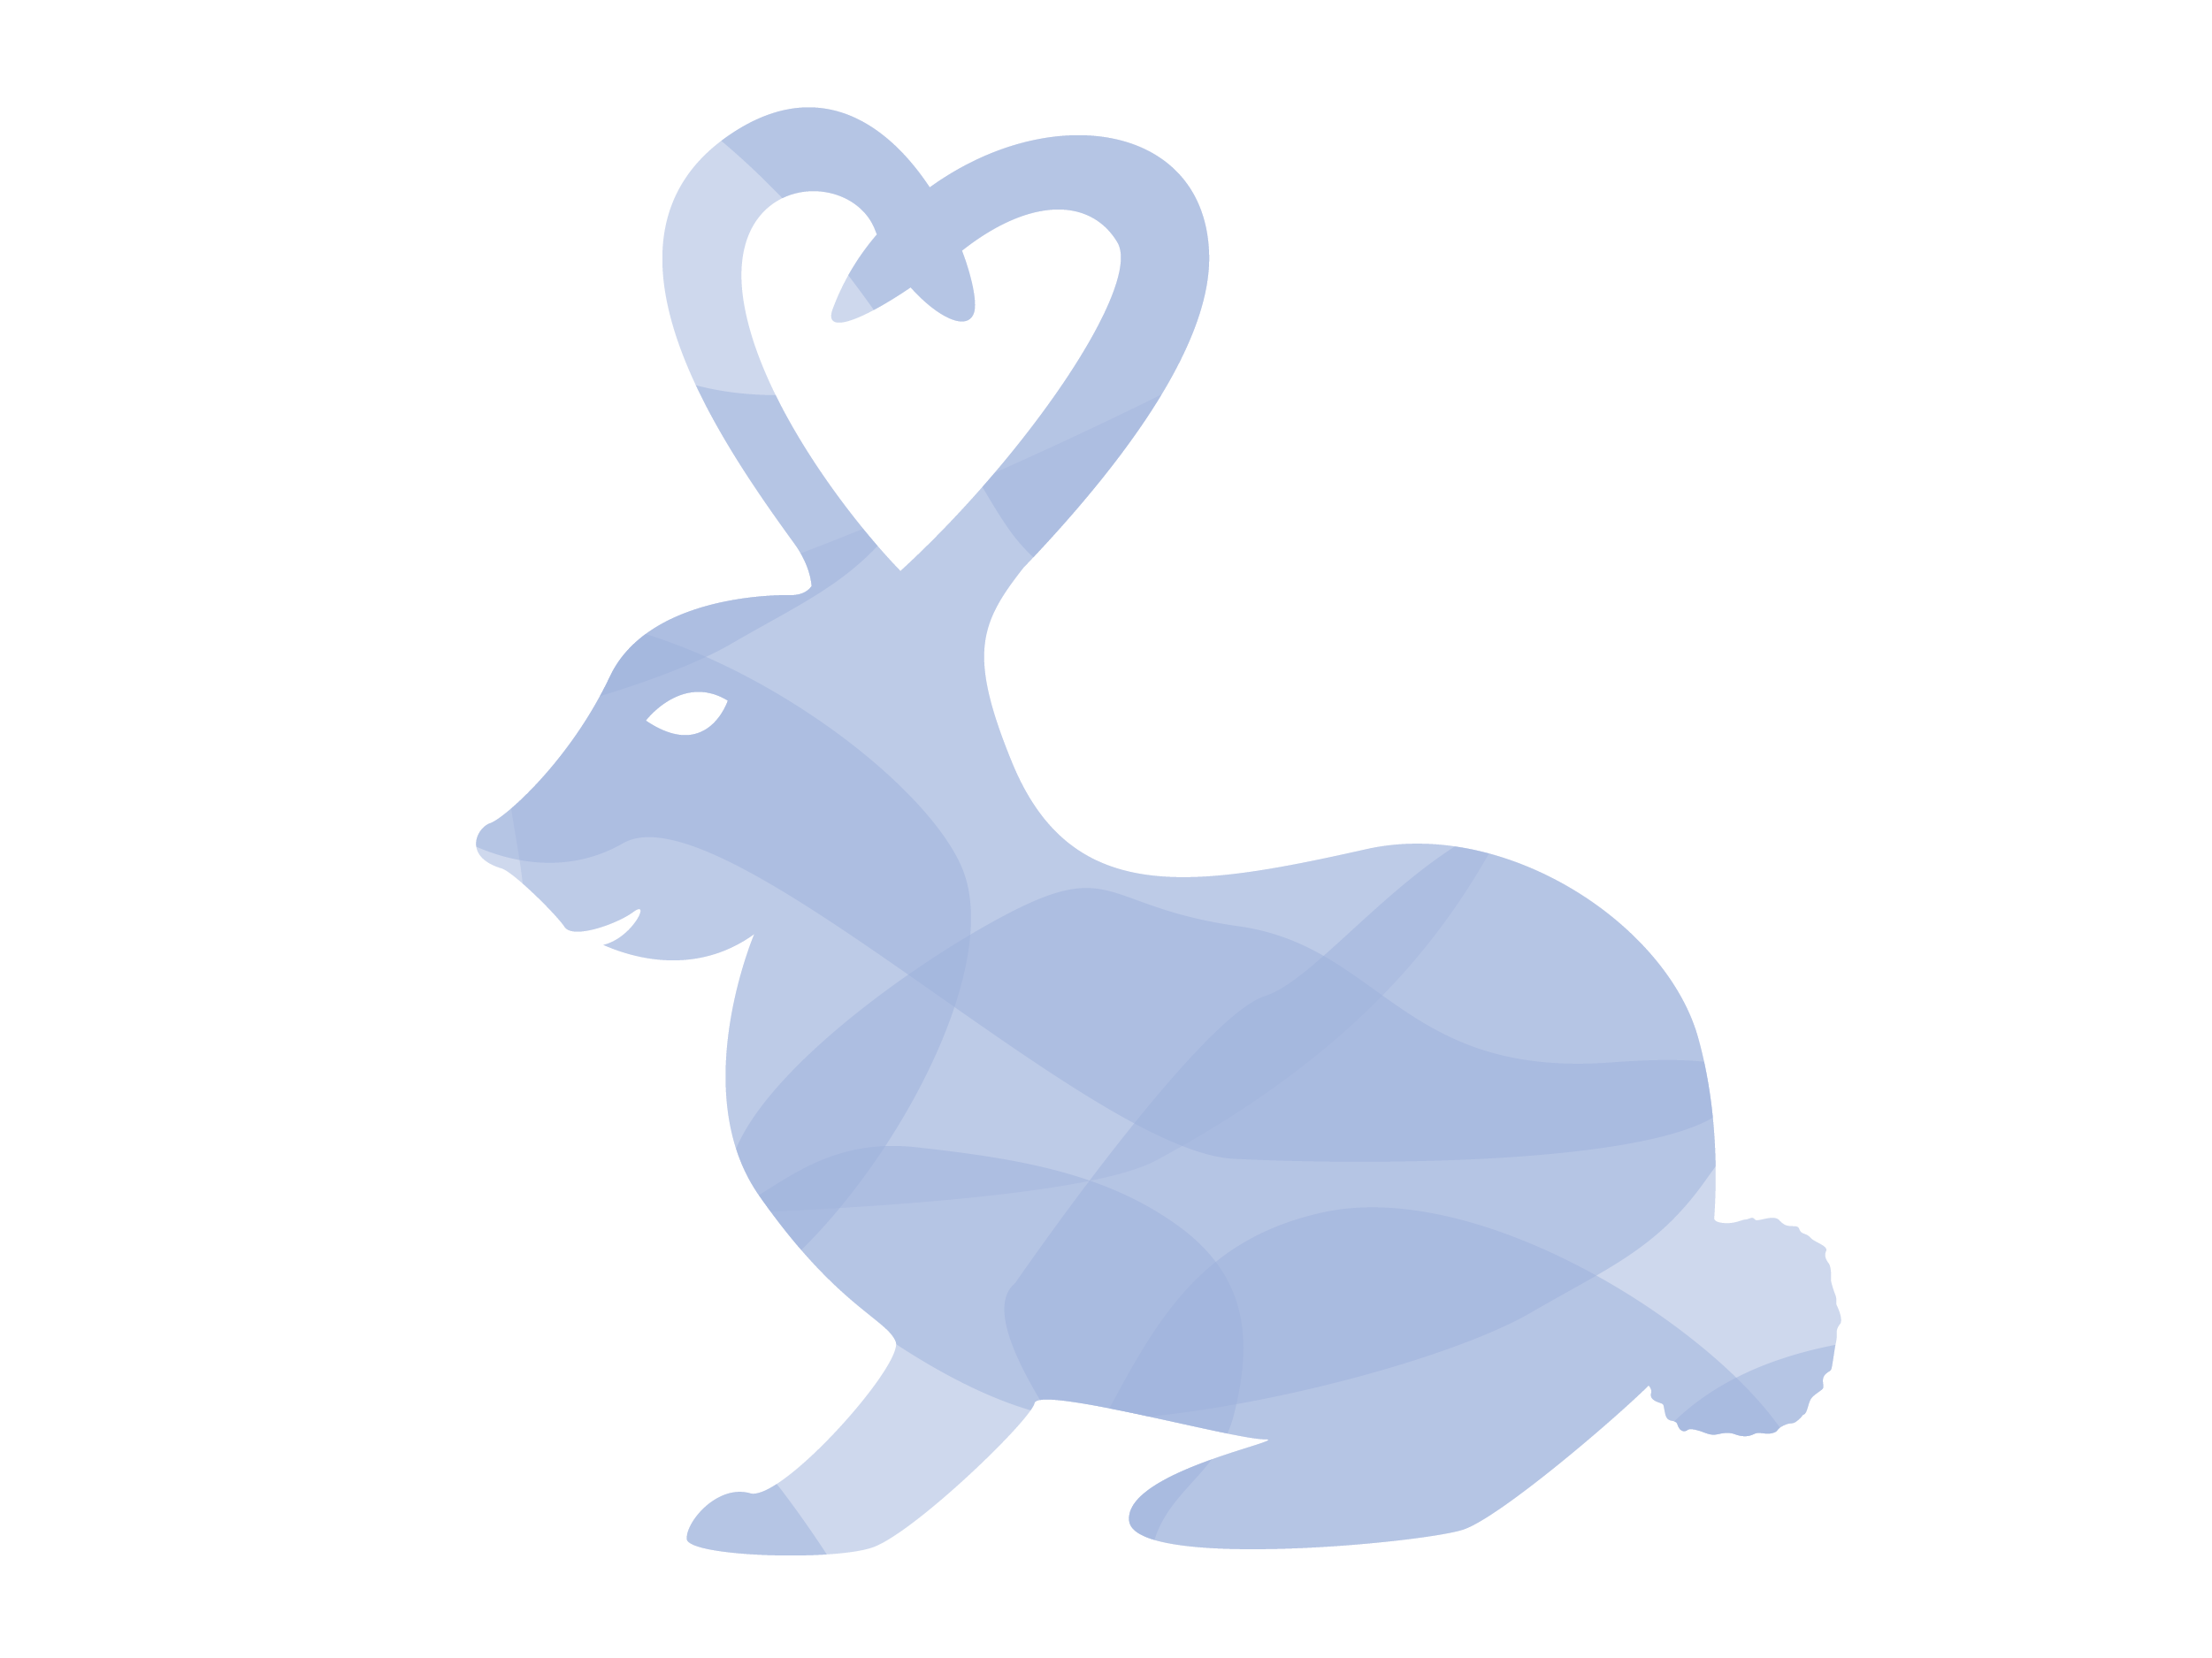 Illustration of blue bunny with ears up that make a heart shape